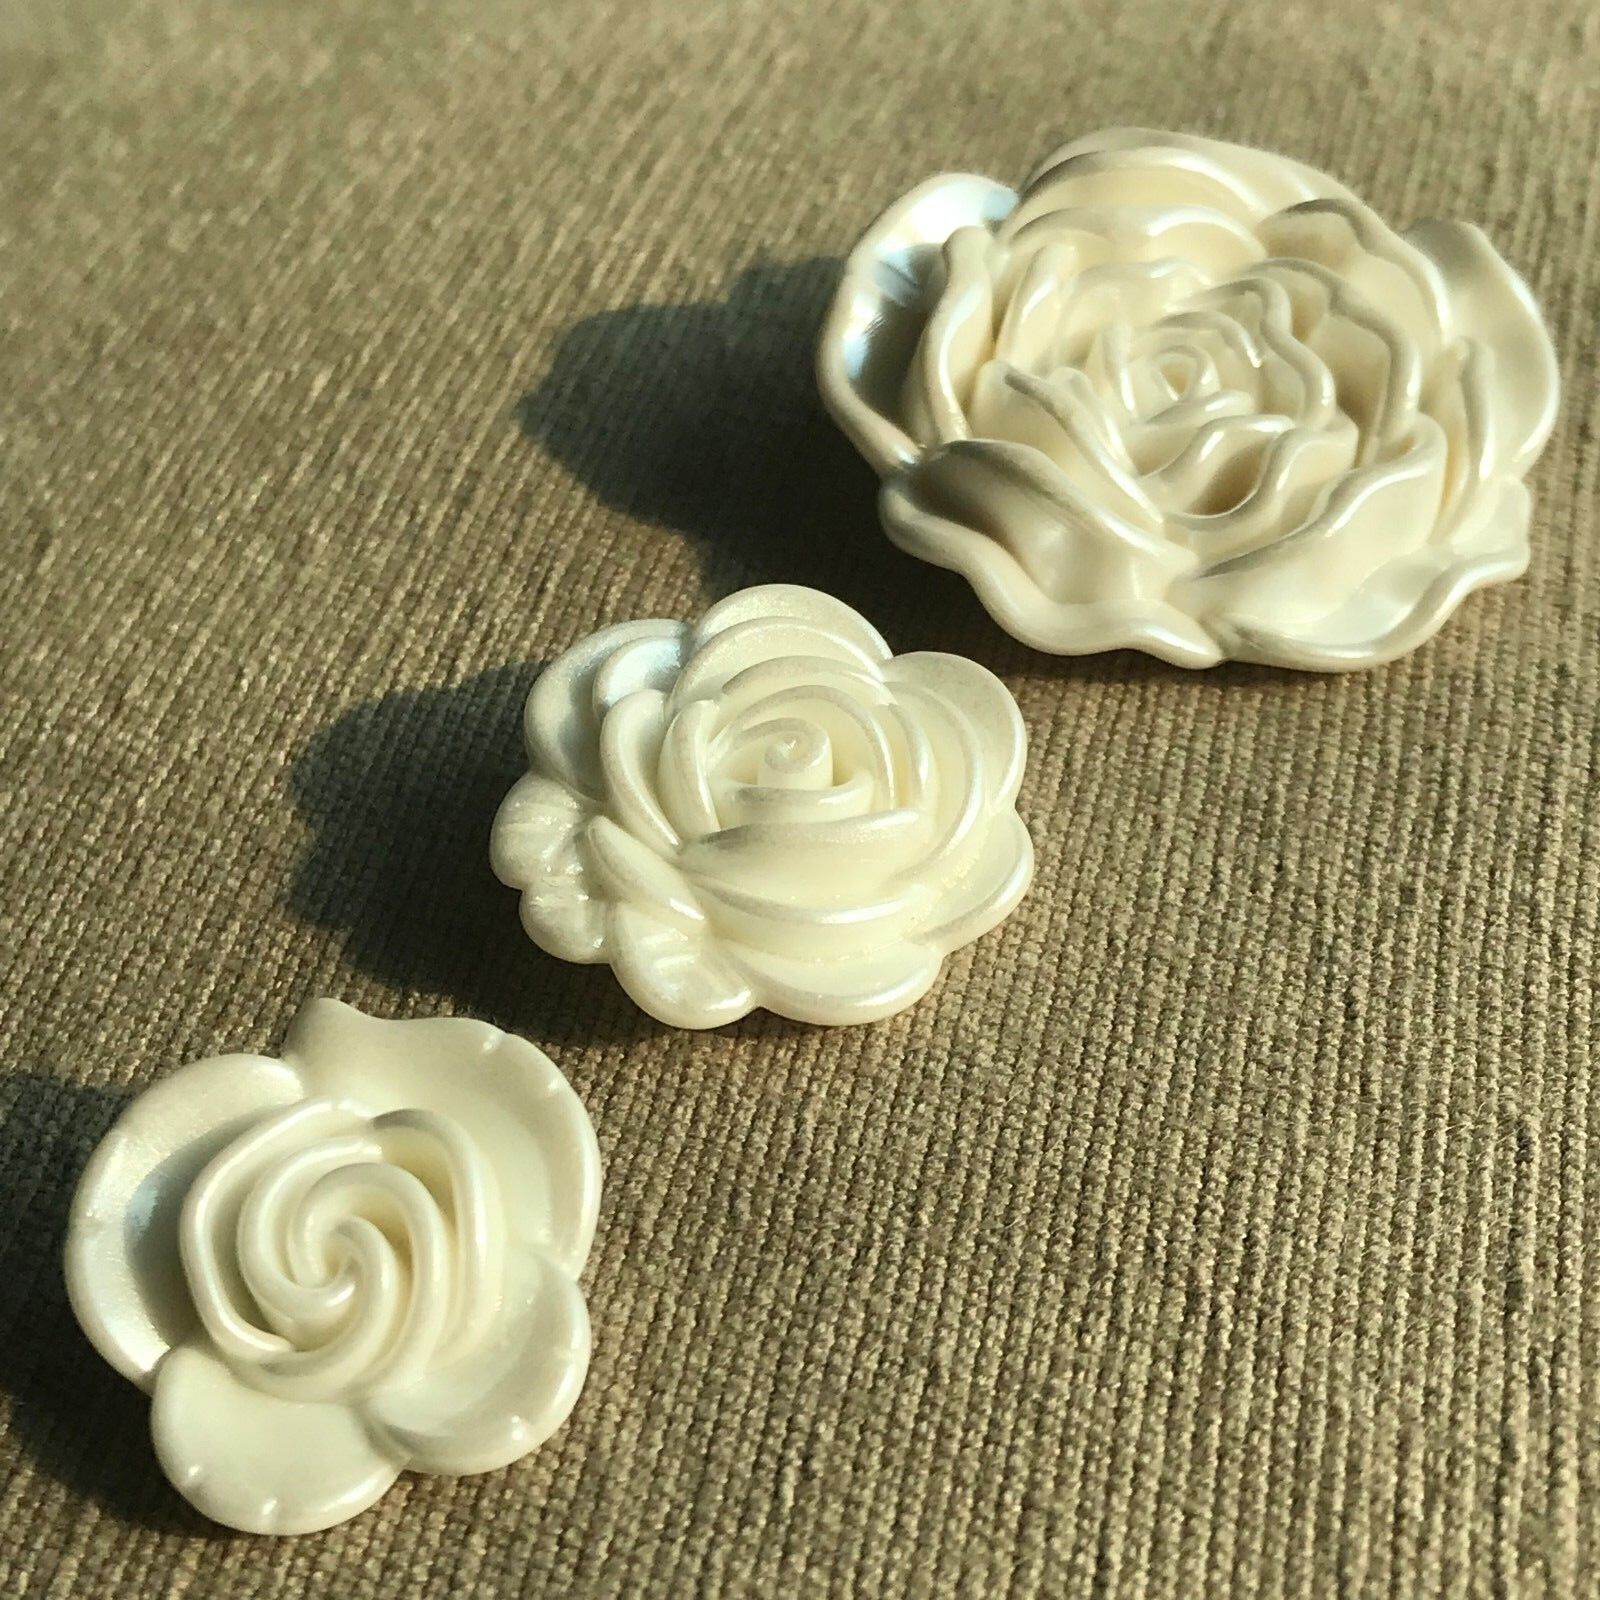 Vintage White w// Gold Metal Center Shank Buttons Flower 20mm Lot of 60 B119-9